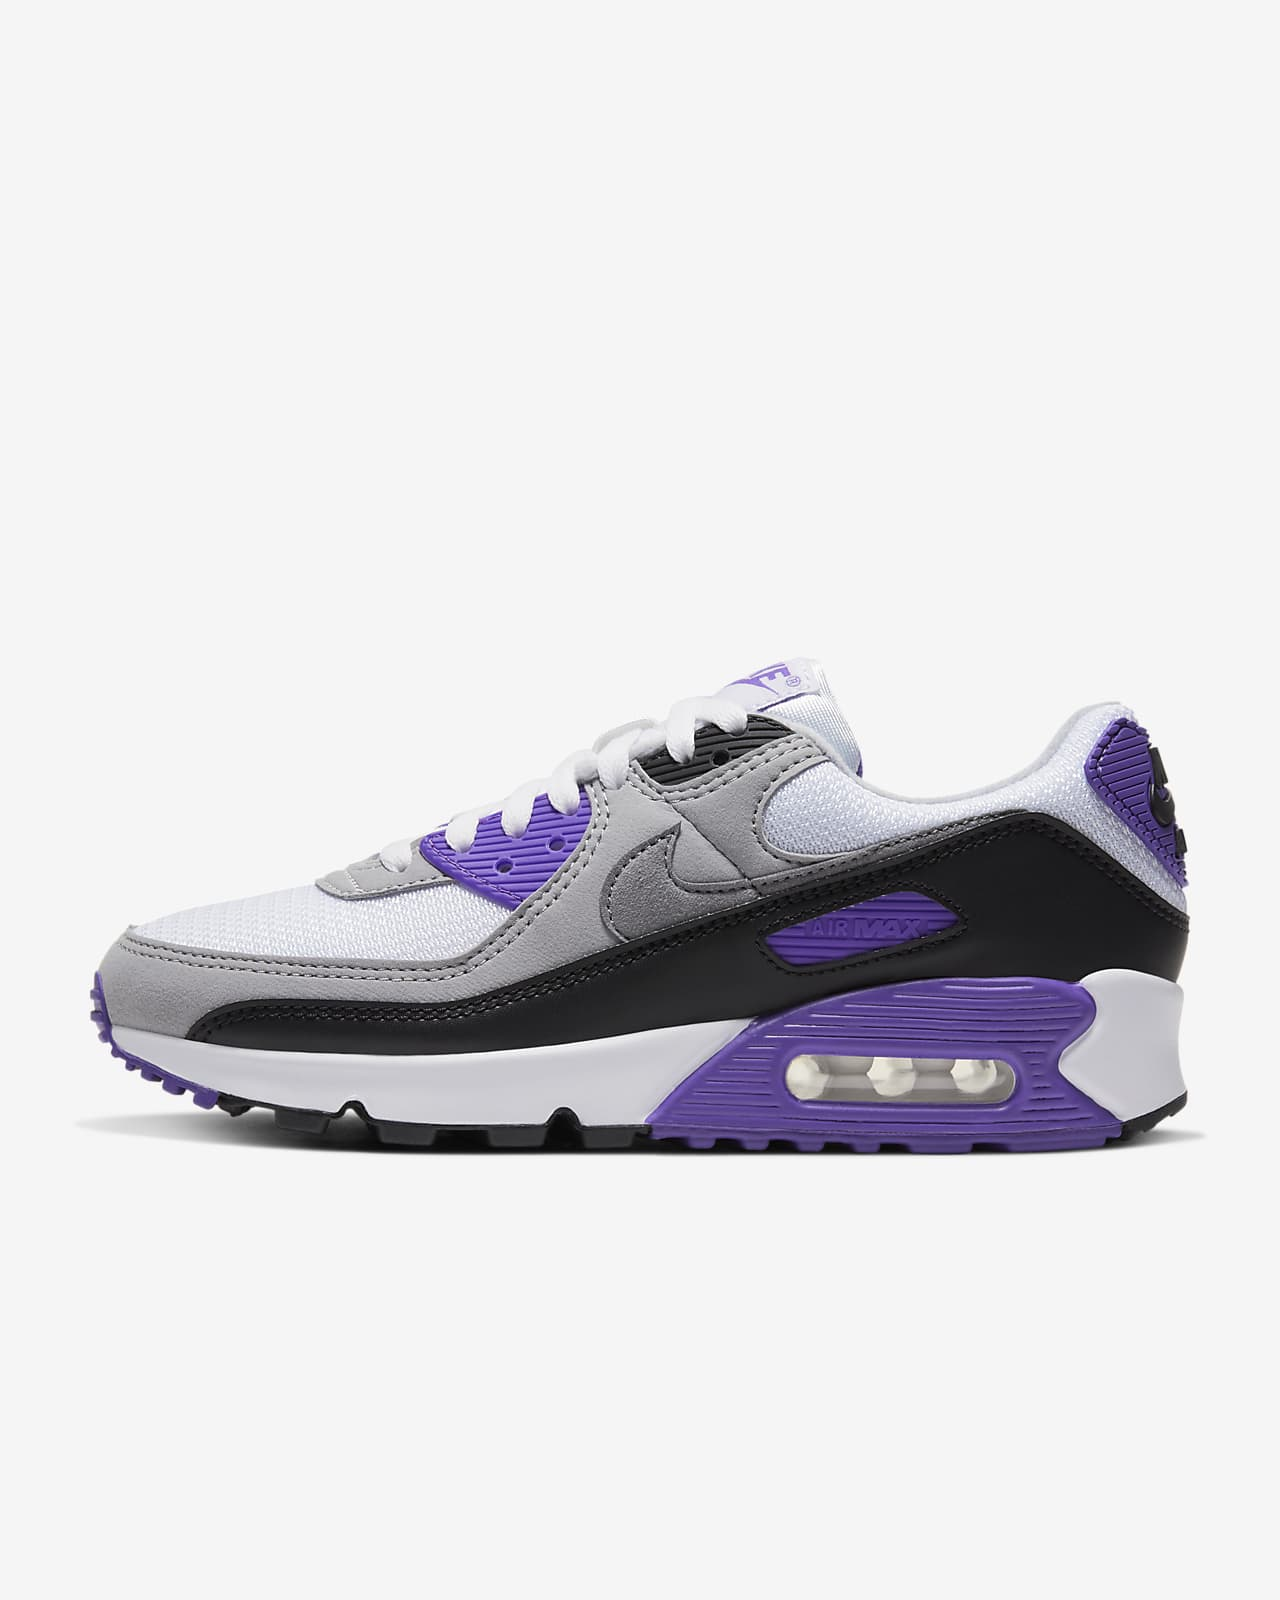 38 Best Your Favorite Nike AirMax 90s images | Nike, Nike